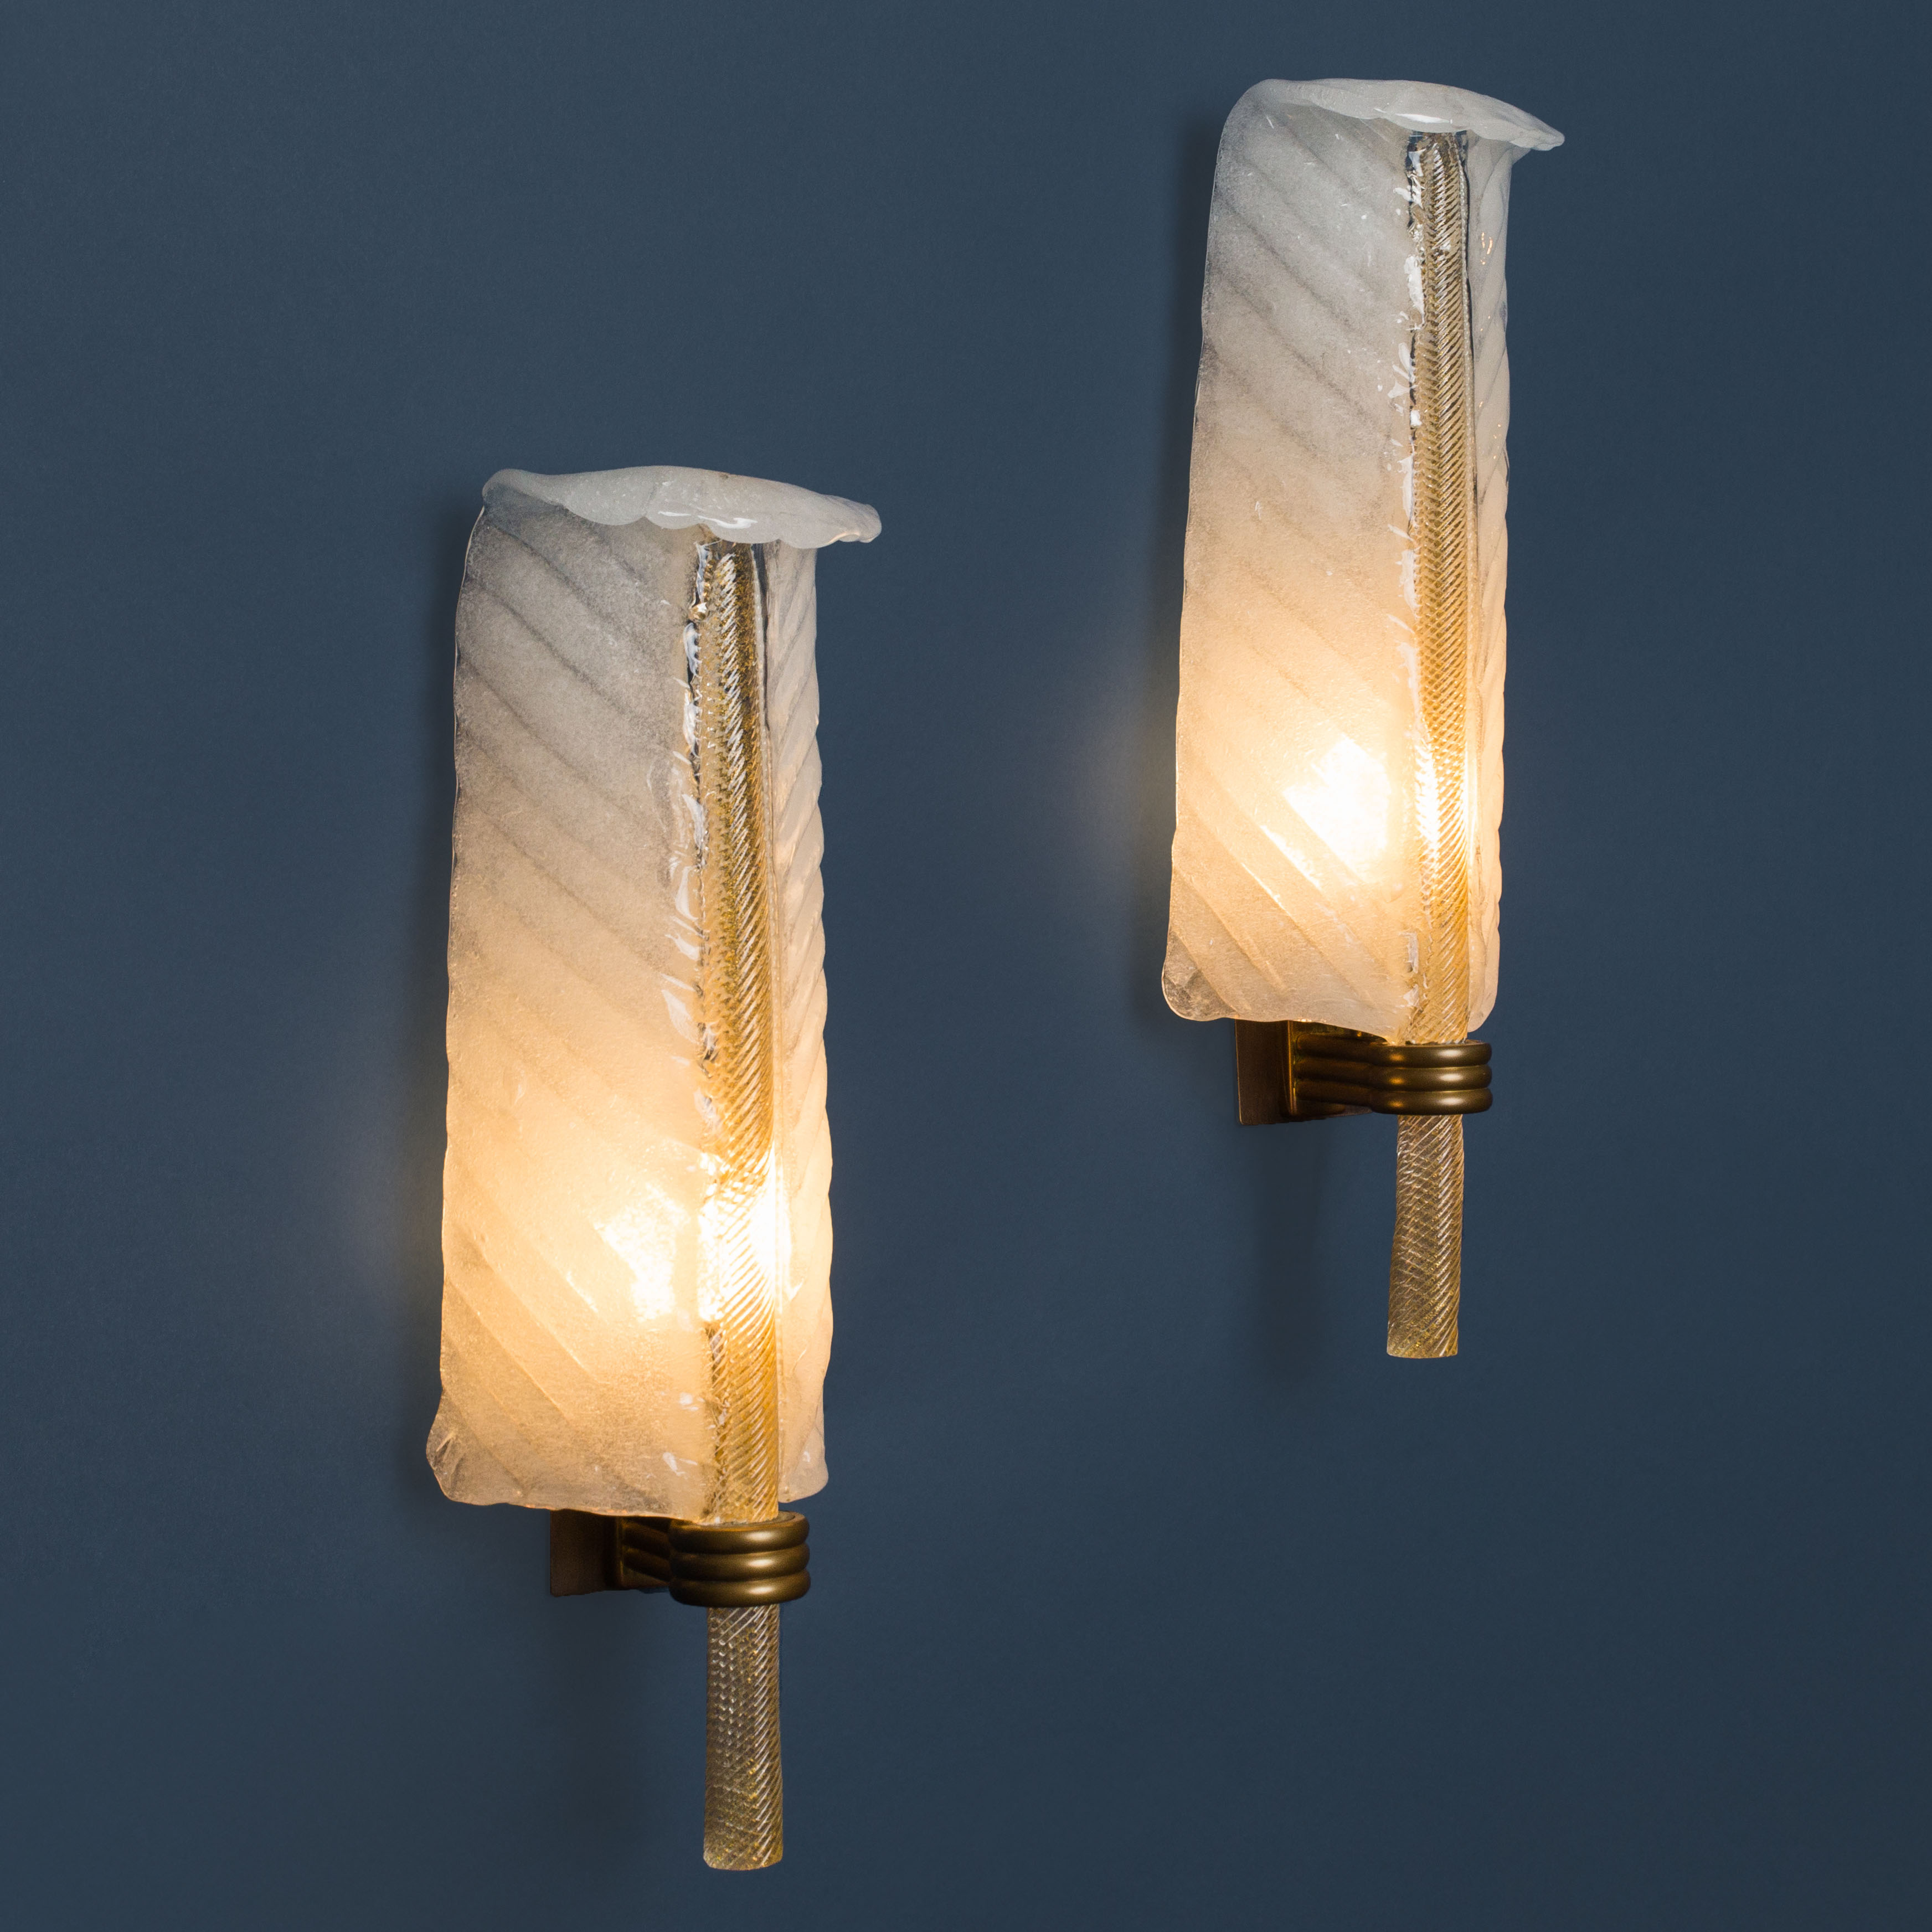 Set of Four Sconces, model 413 by Tomaso Buzzi for Venini | soyun k.